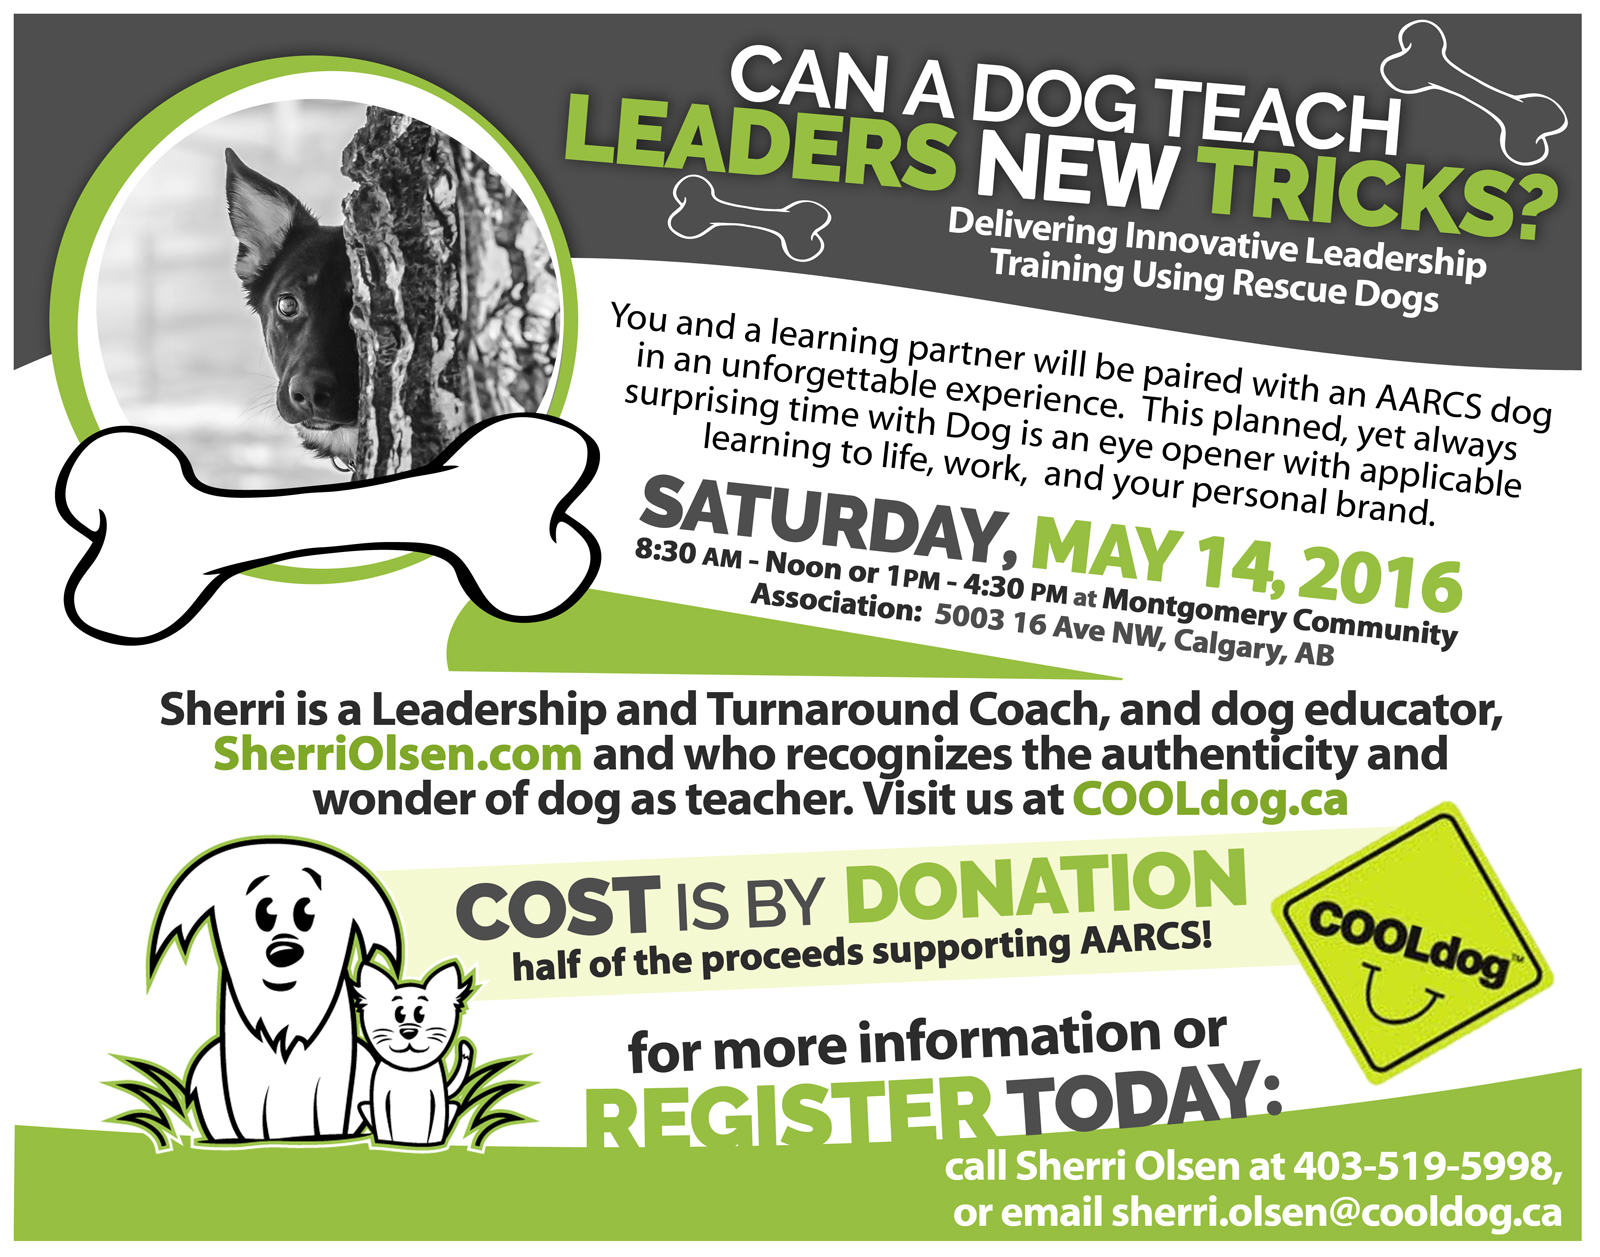 Can a dog teach leaders new tricks?